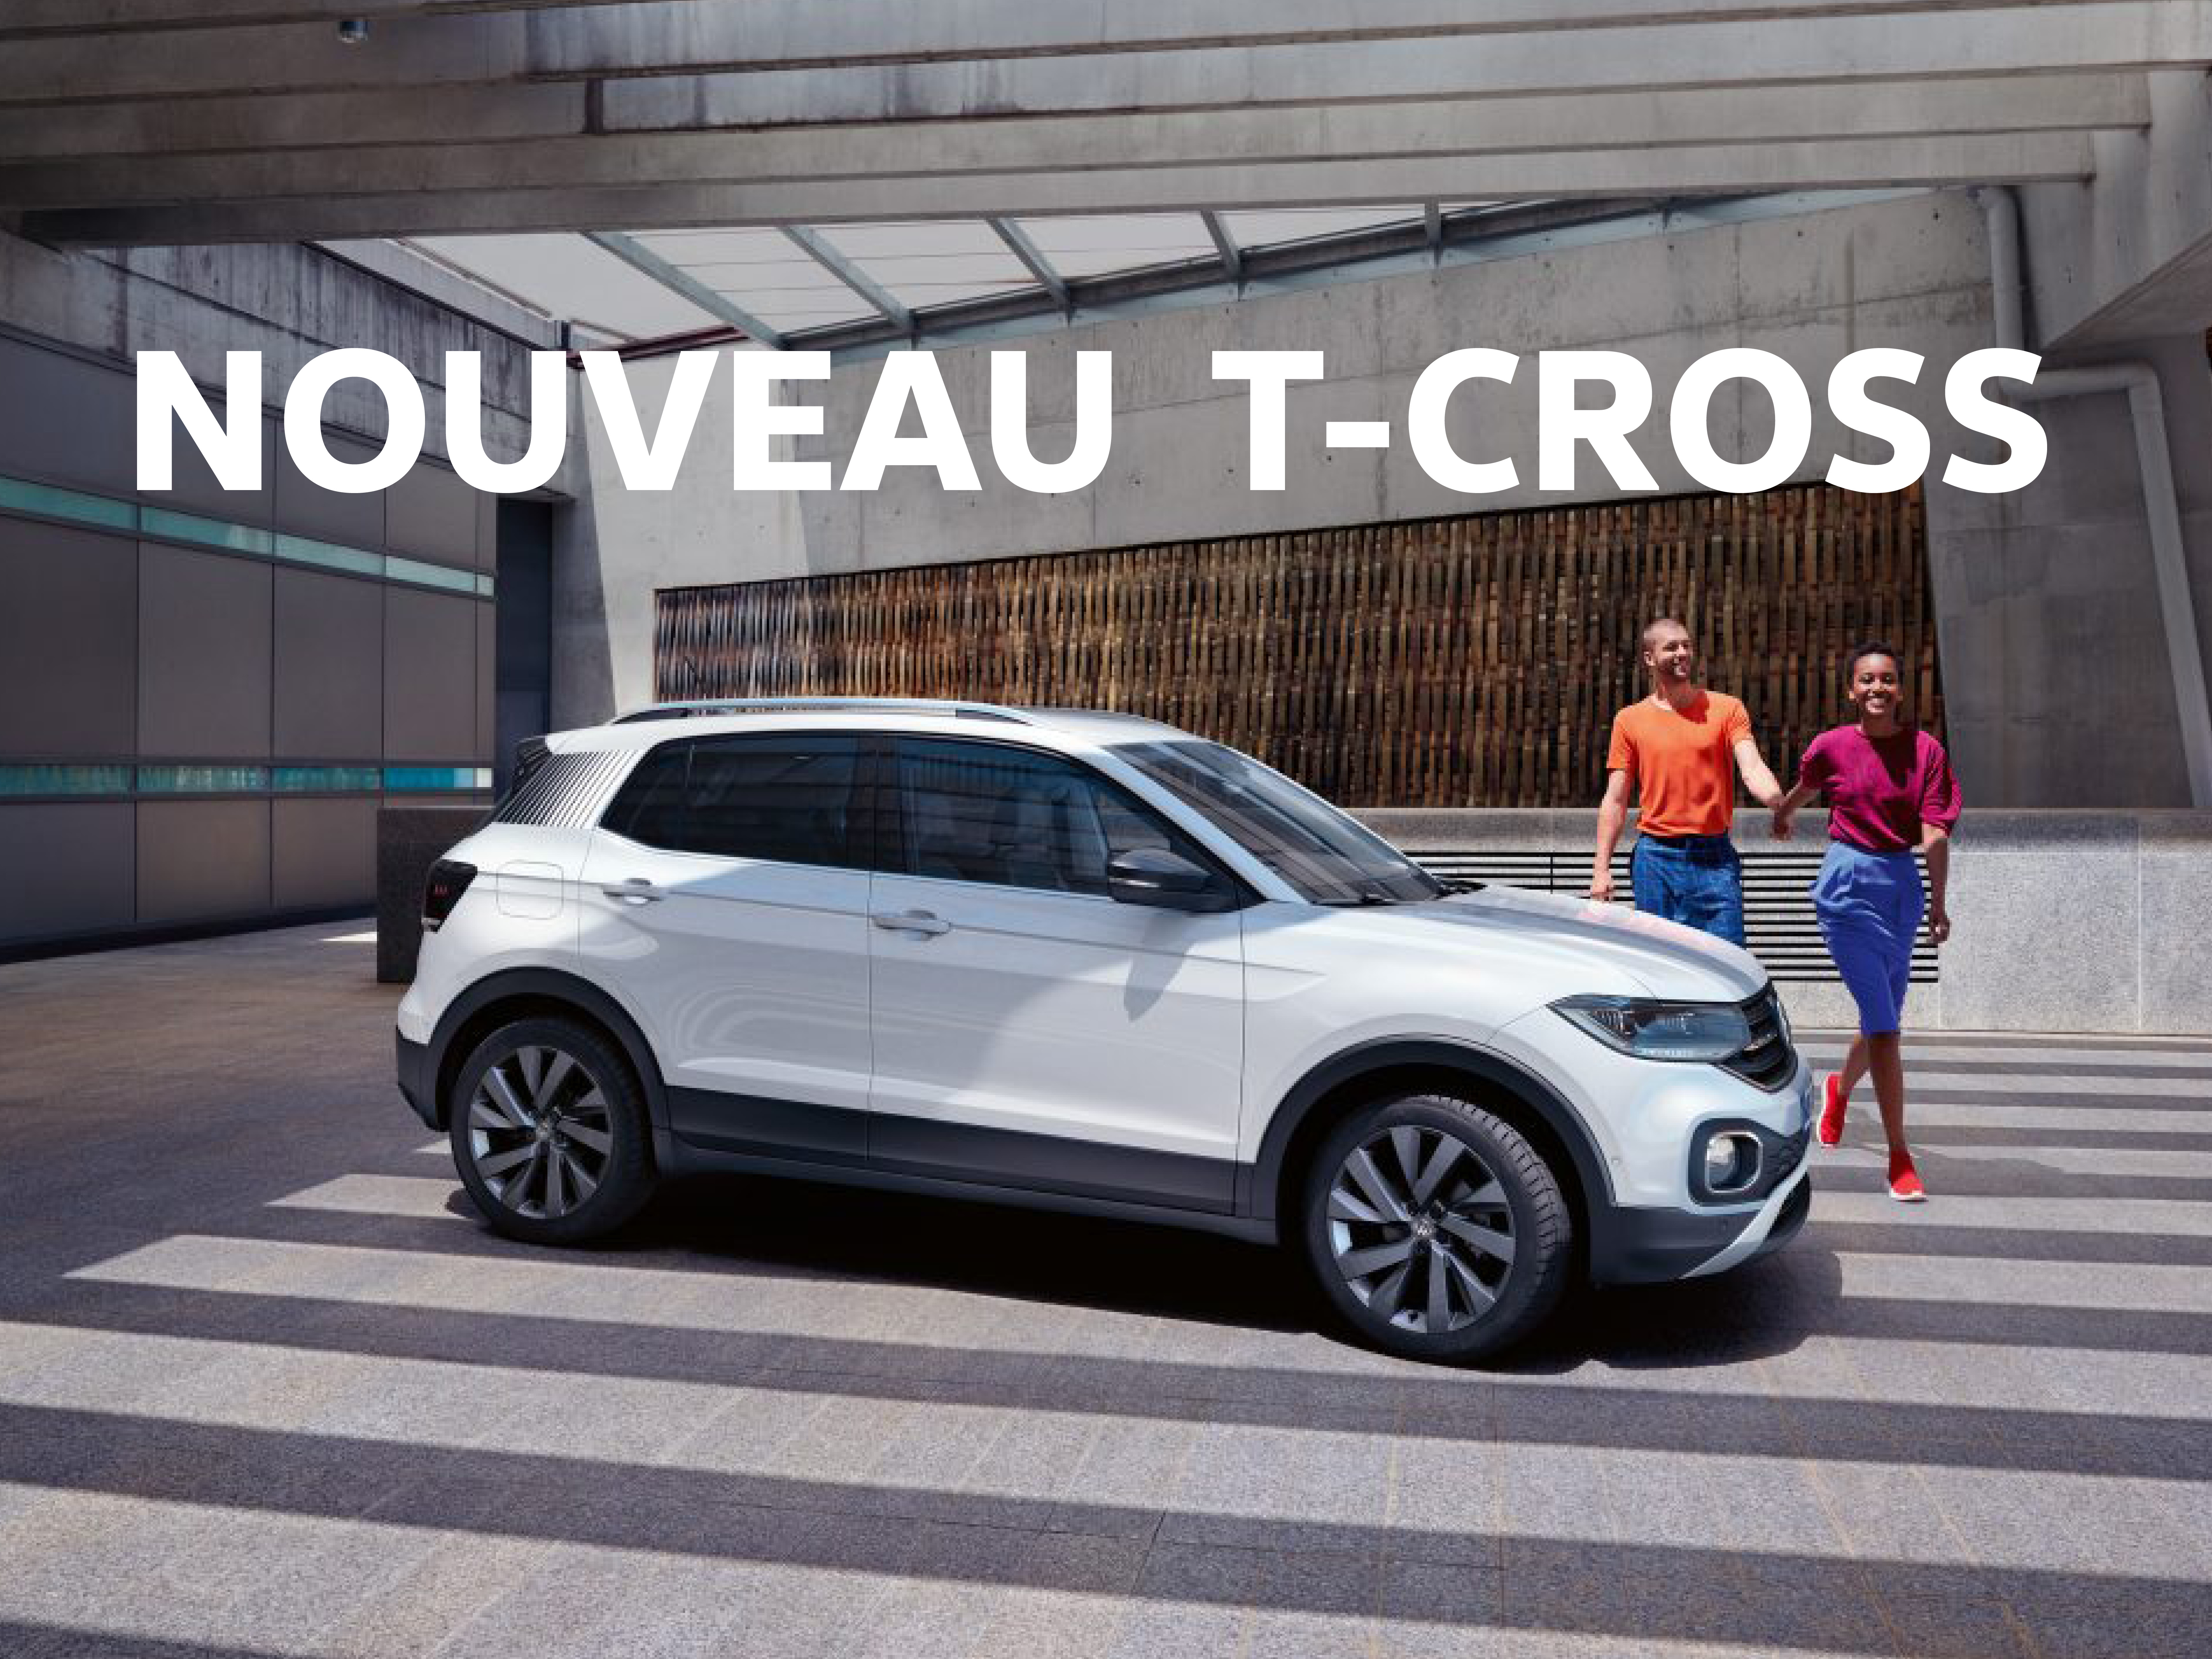 Nouveau T-Cross First Edition